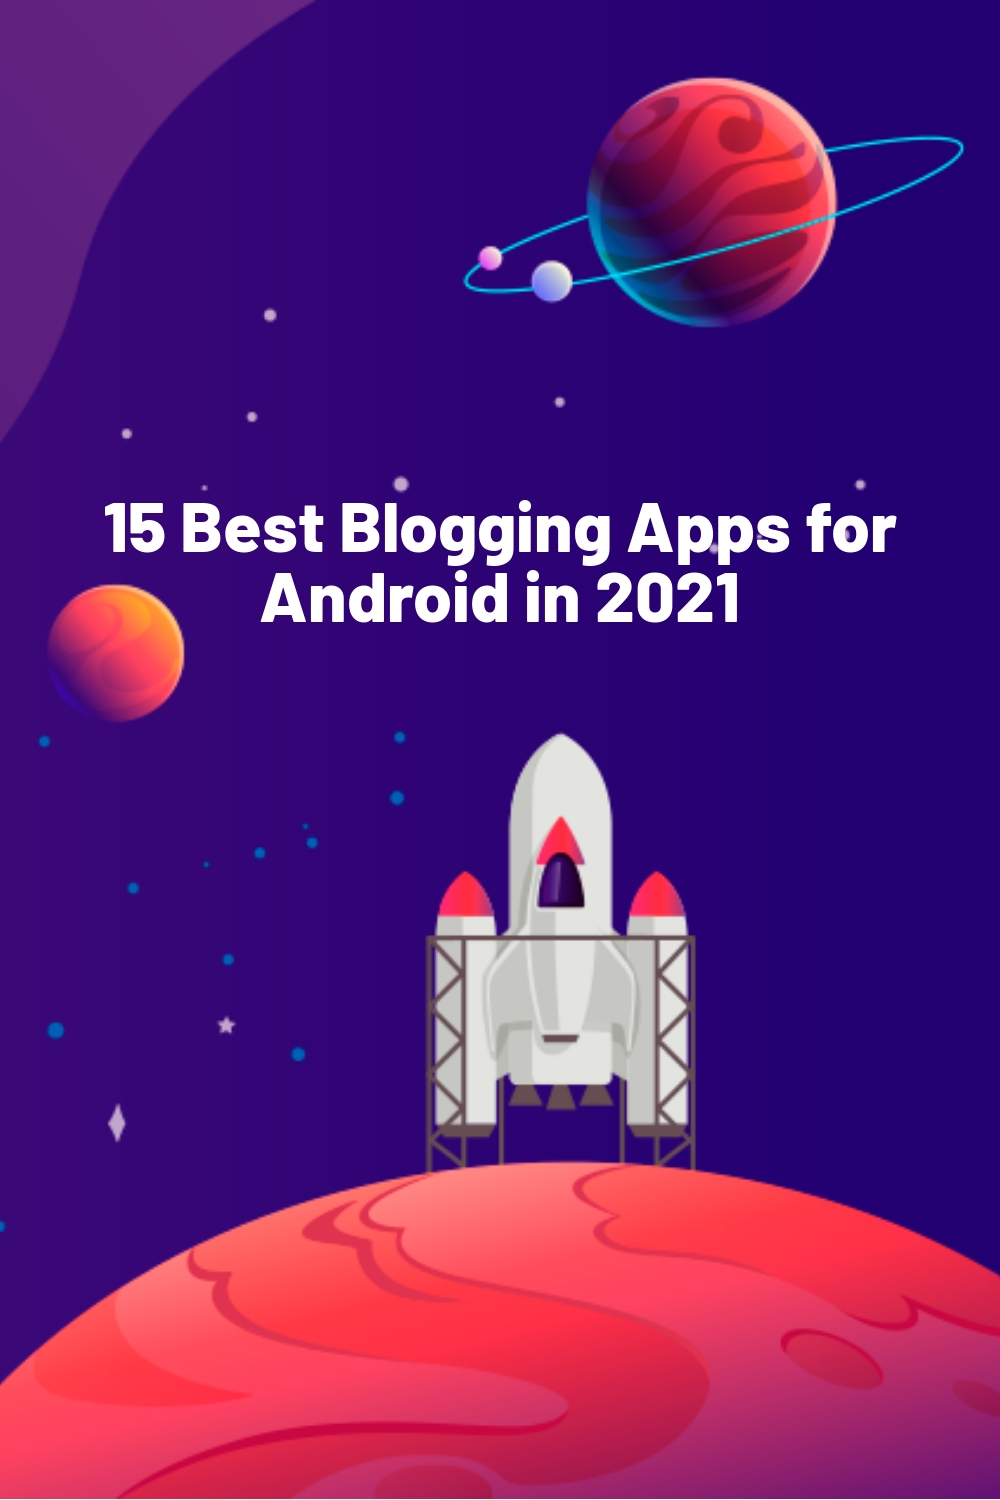 15 Best Blogging Apps for Android in 2021